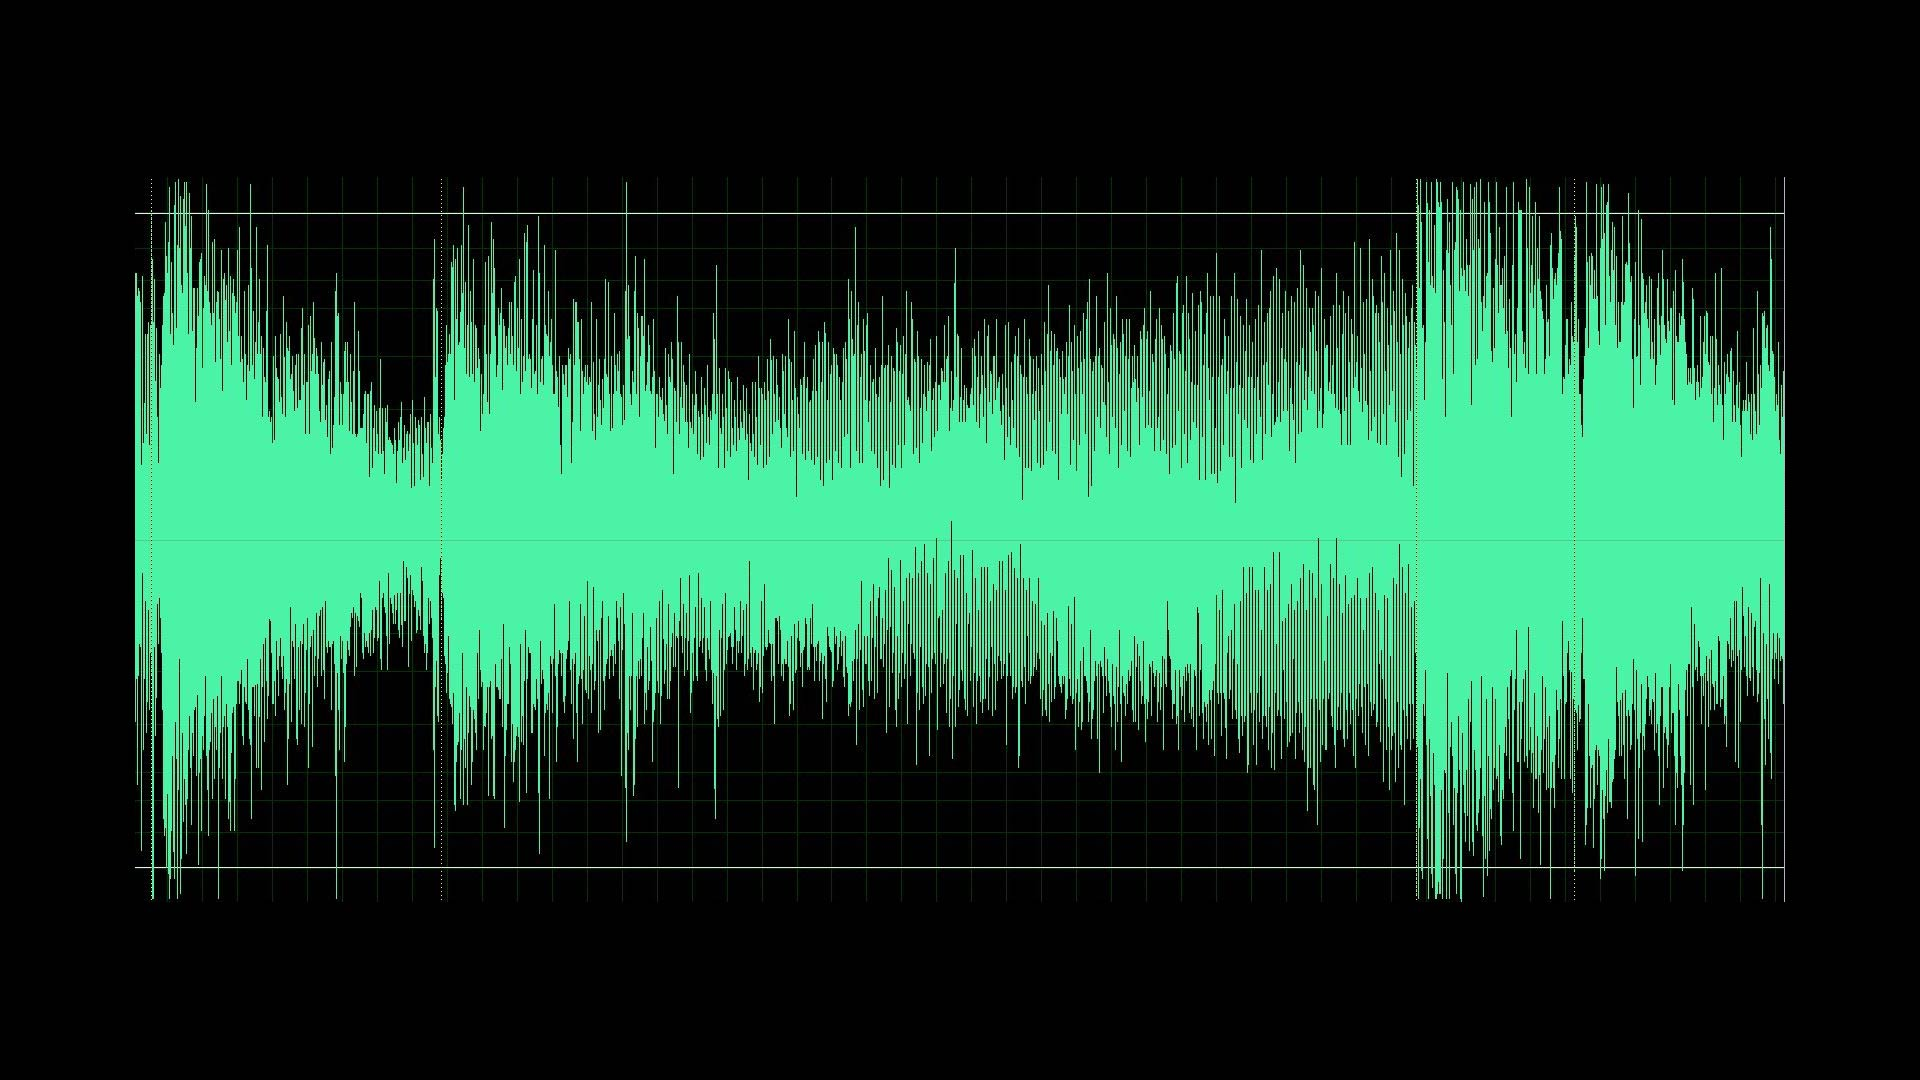 An audio waveform.